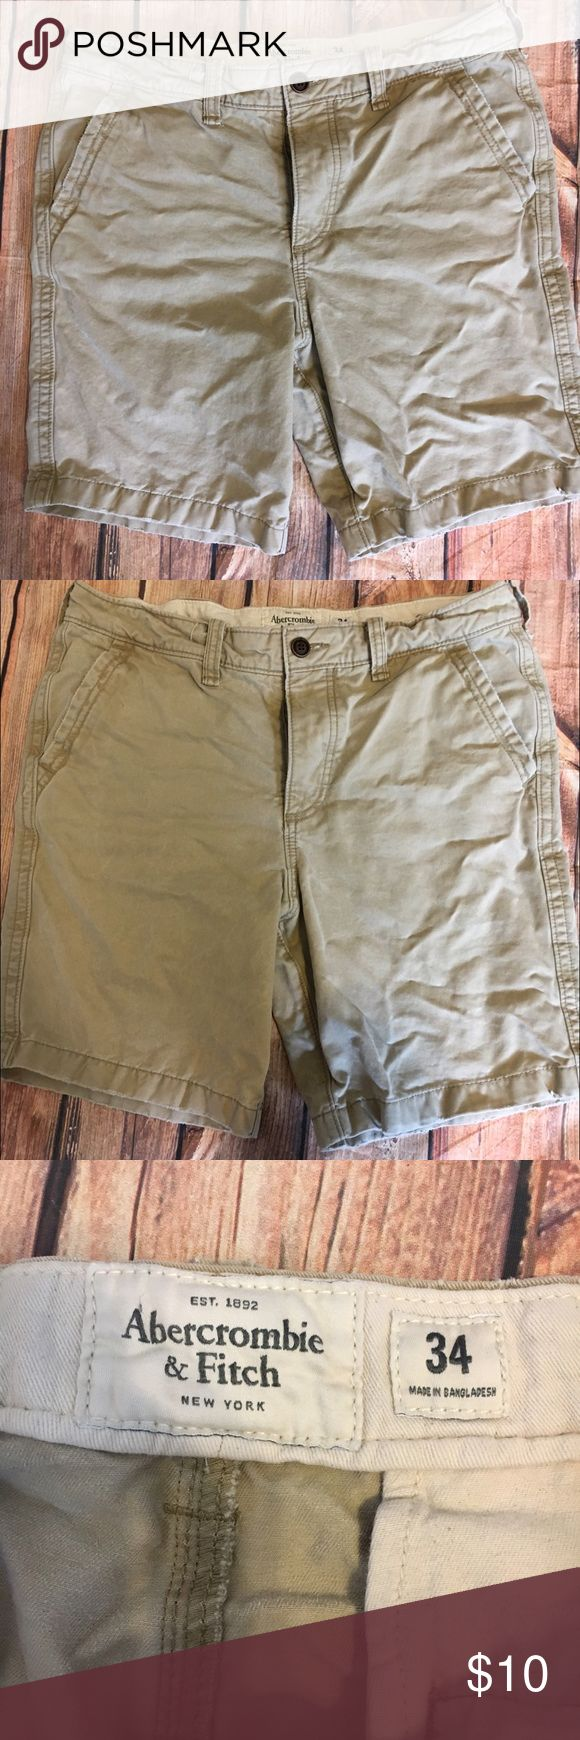 Abercrombie men's khaki shorts size 34 Abercrombie size 34 khaki shorts. Intentionally distressed. Please note before purchase that there is intentional distressing. Button fly. Previously worn condition. Abercrombie & Fitch Shorts